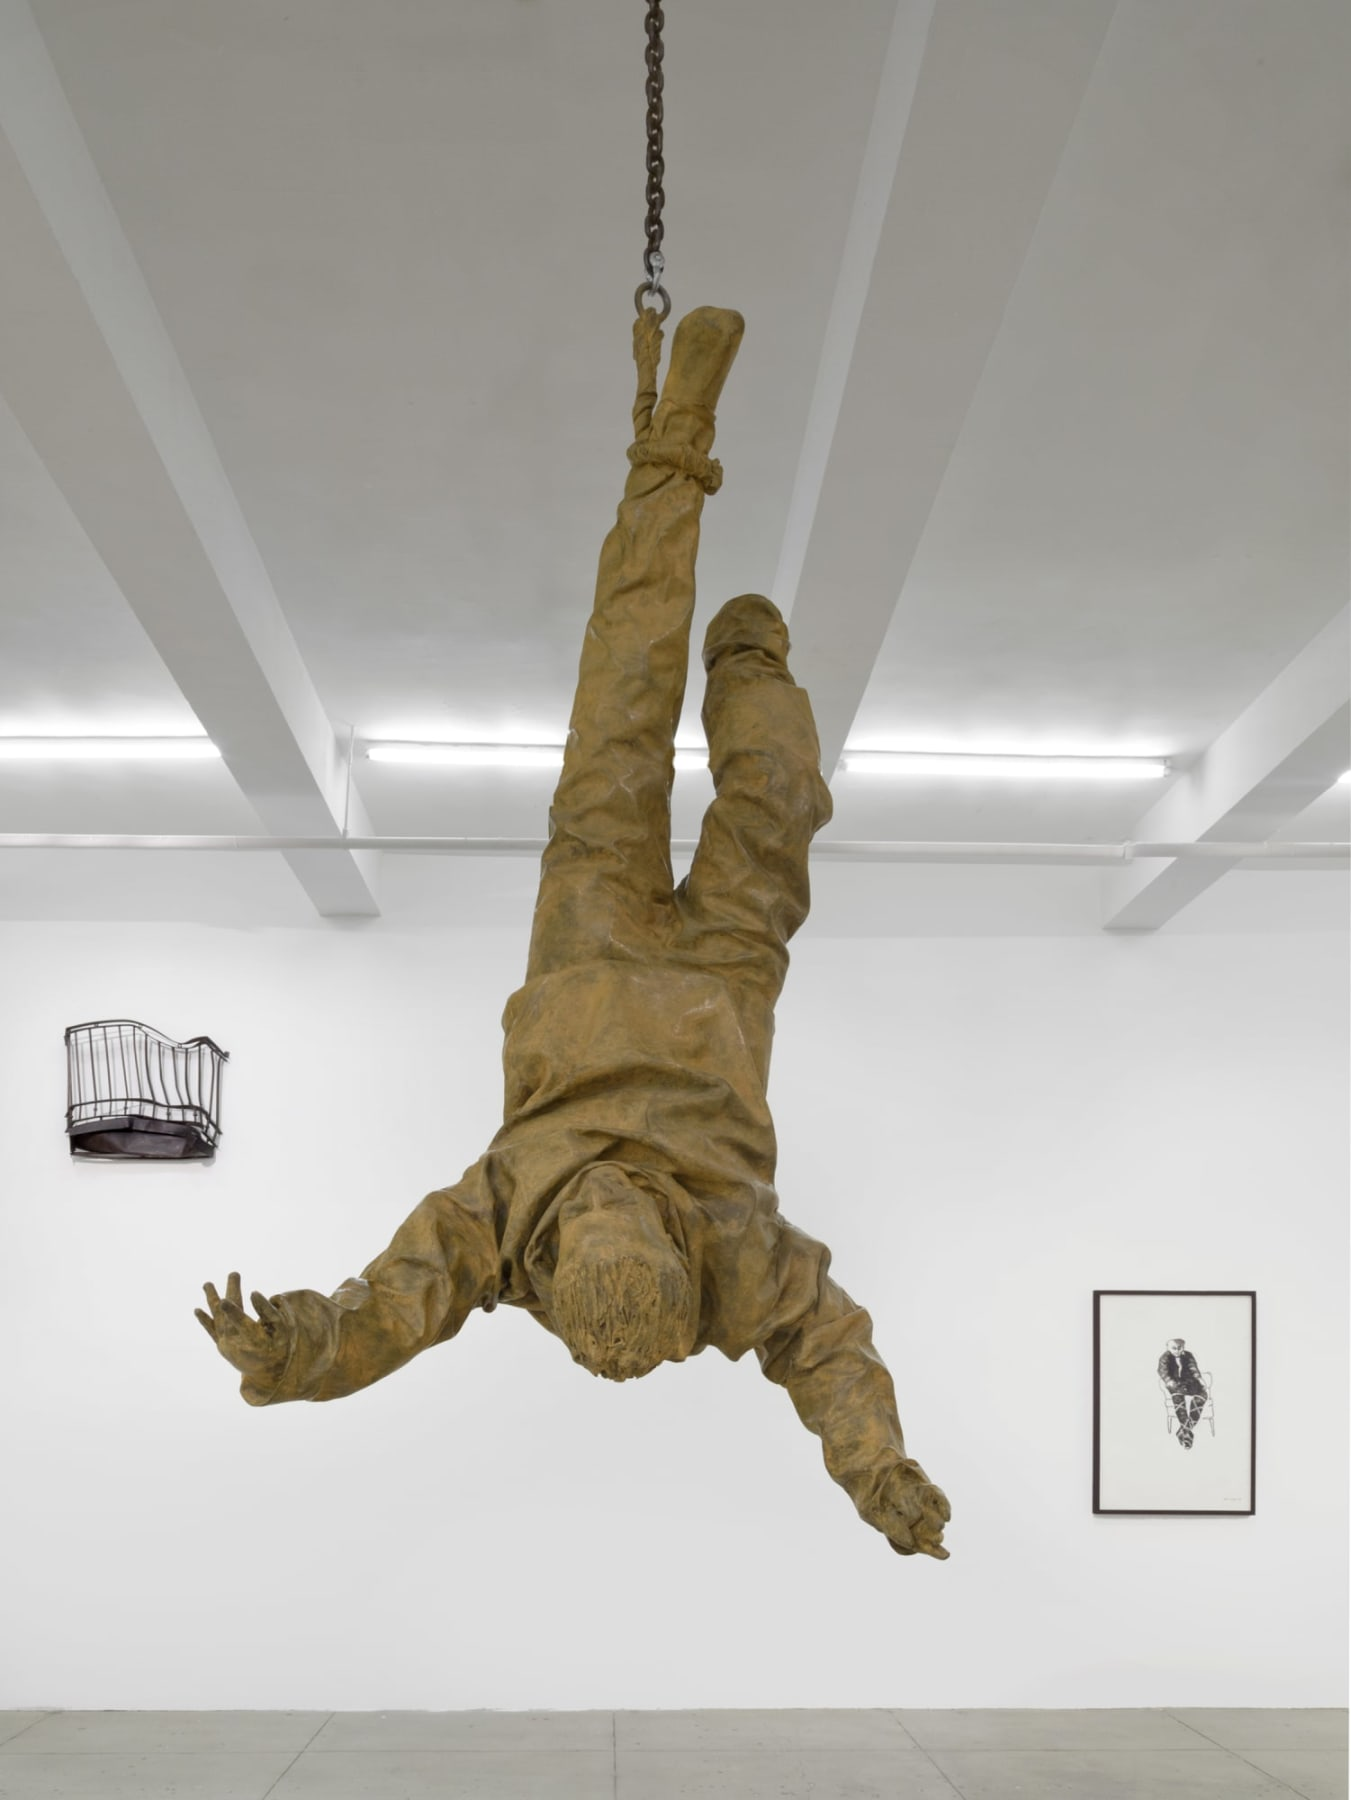 Sculpture of person suspended in air upside down by the foot